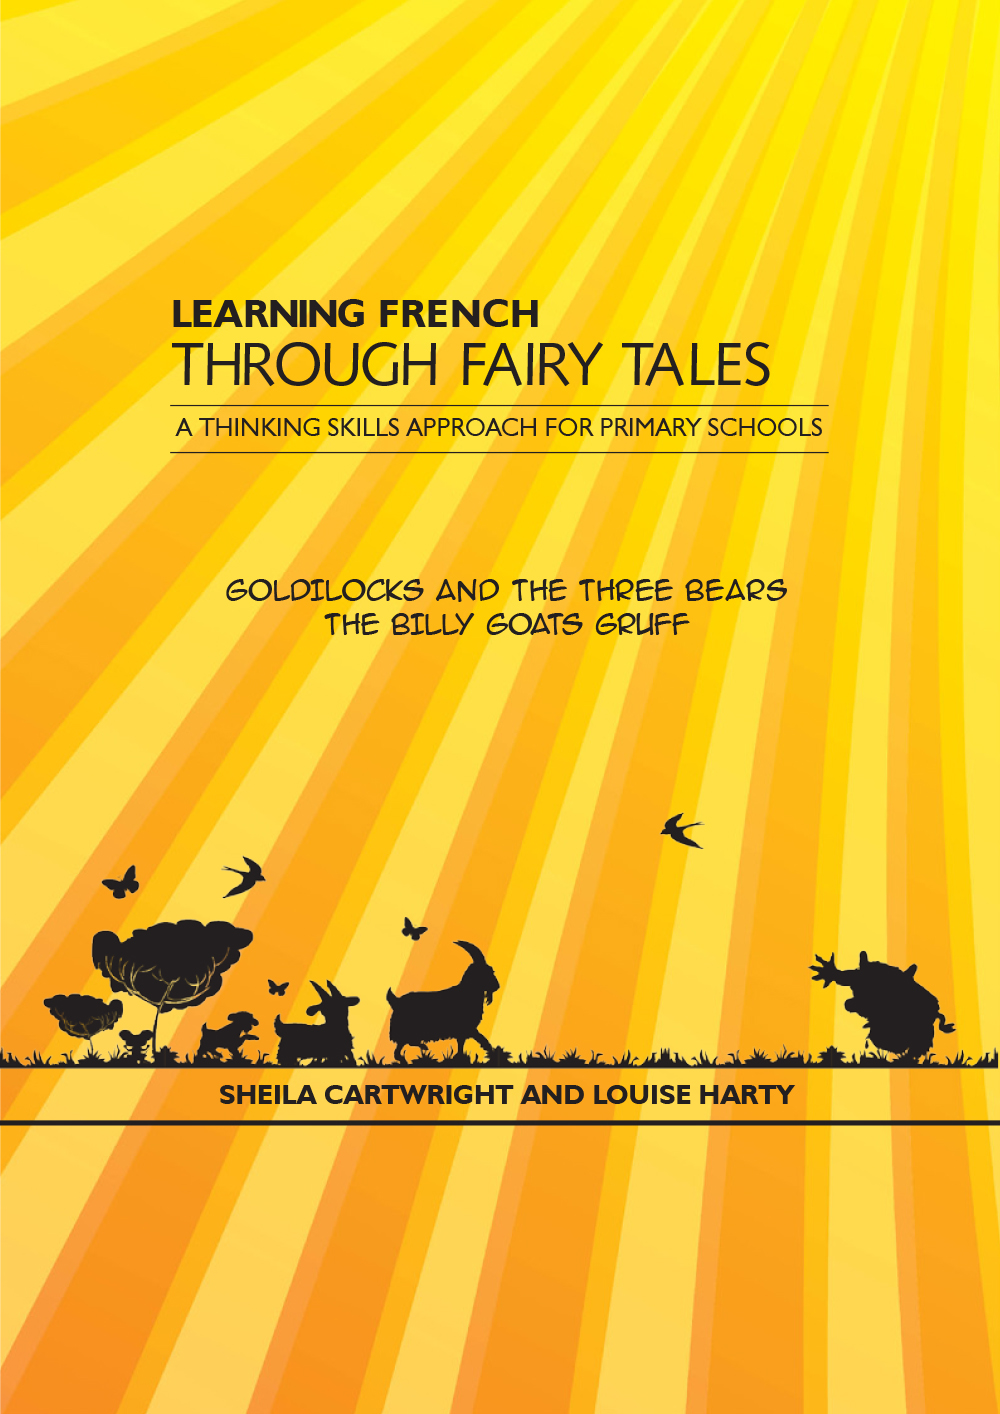 Learning French through Fairy Tales